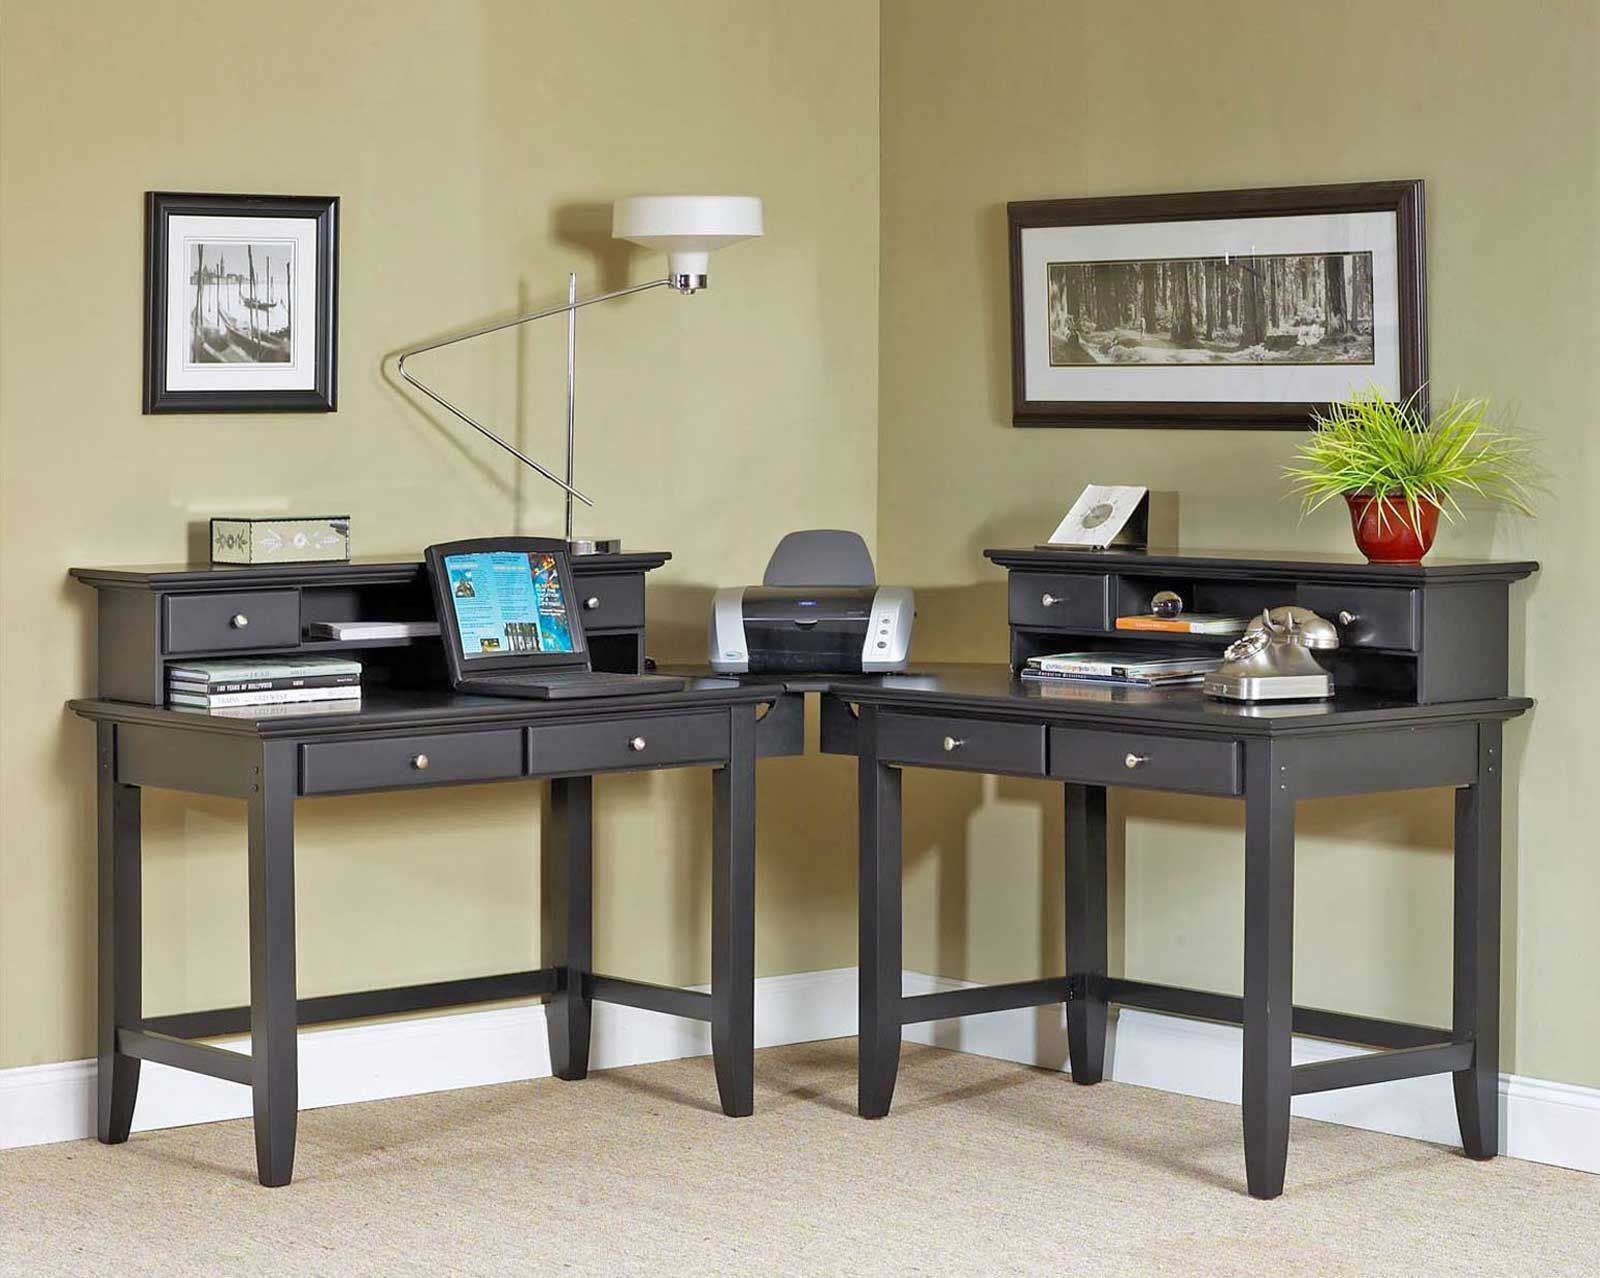 Unique 2 computer desk home office bedford corner computer for Home office corner desk ideas